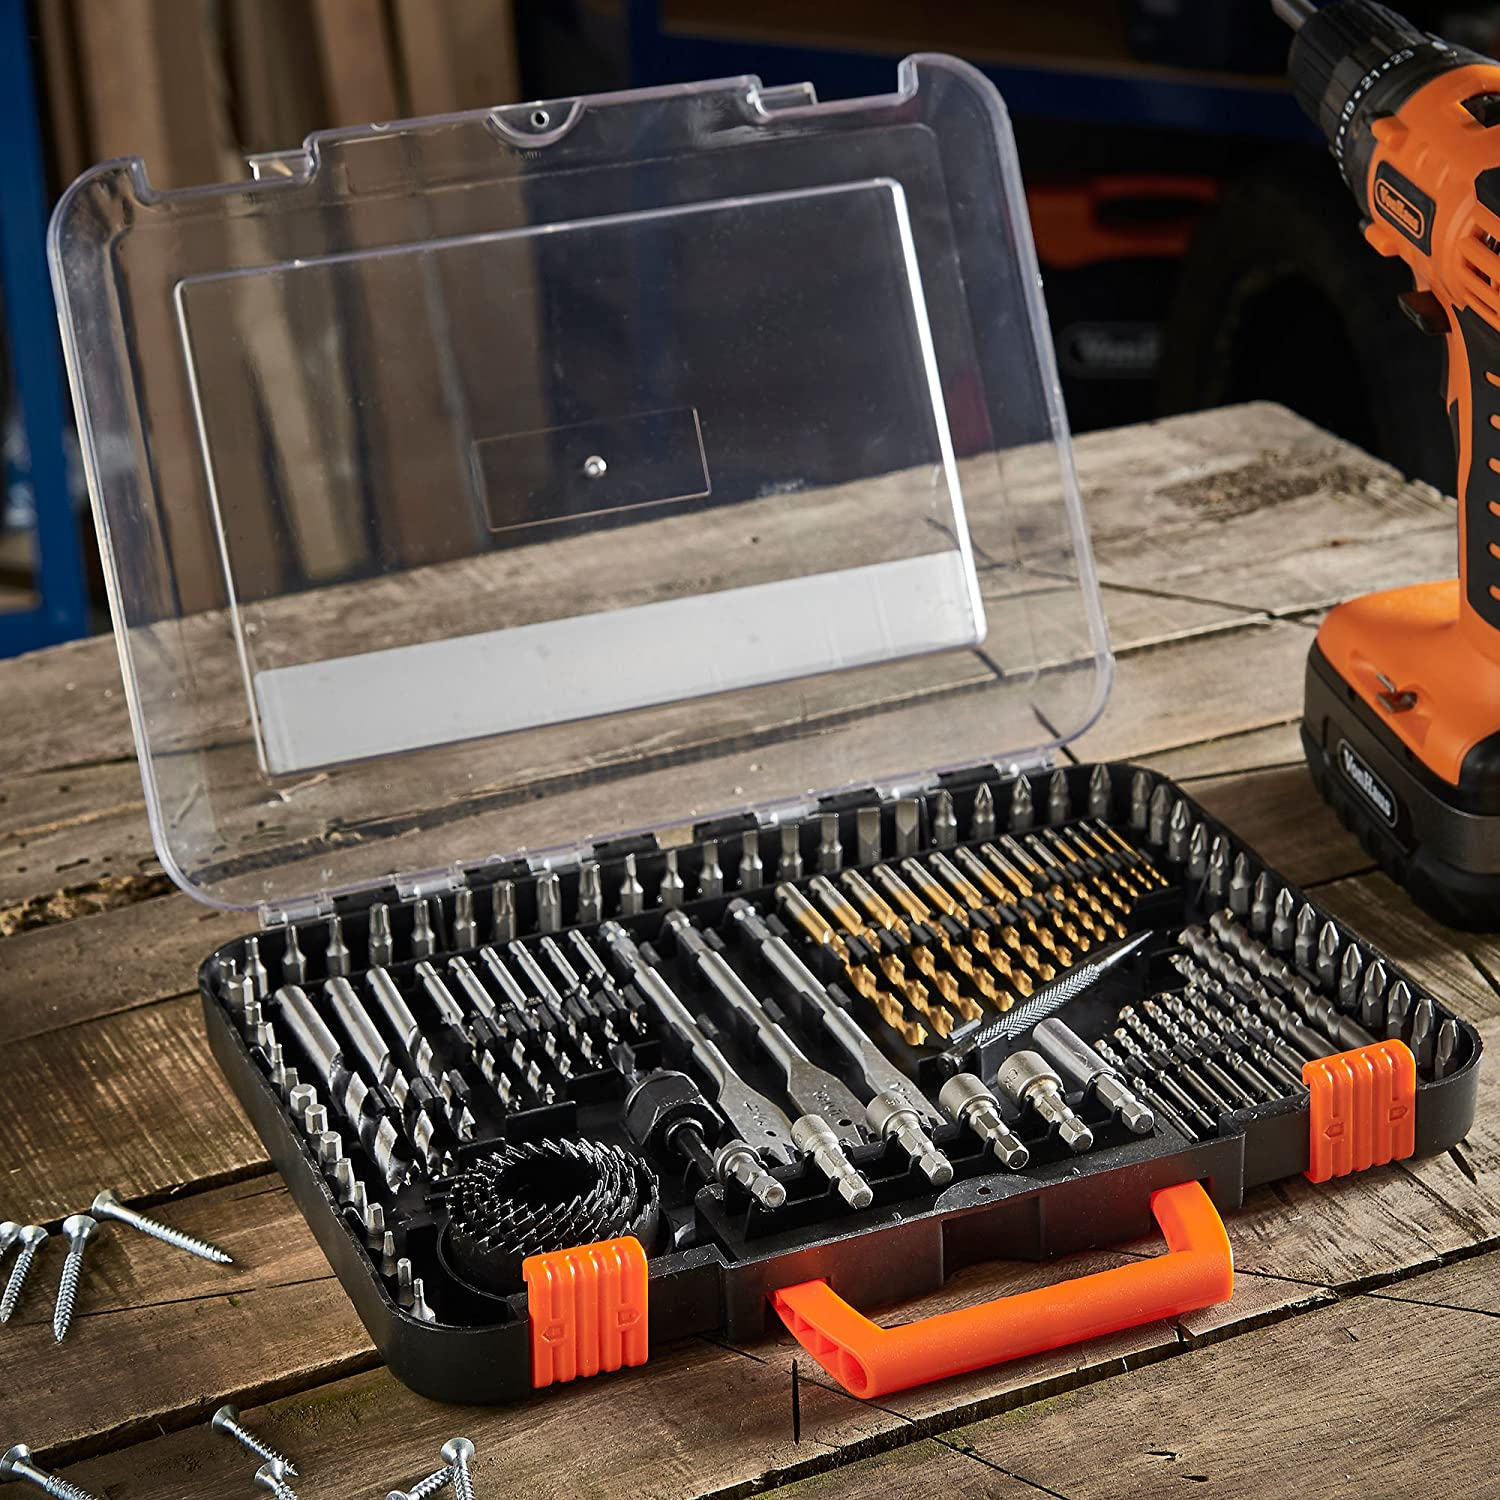 VonHaus 100-Piece Drill and Drive Bit Set with Titanium Coated HSS Bits and Storage Case for Drilling Metal Wood Masonry and Plastic